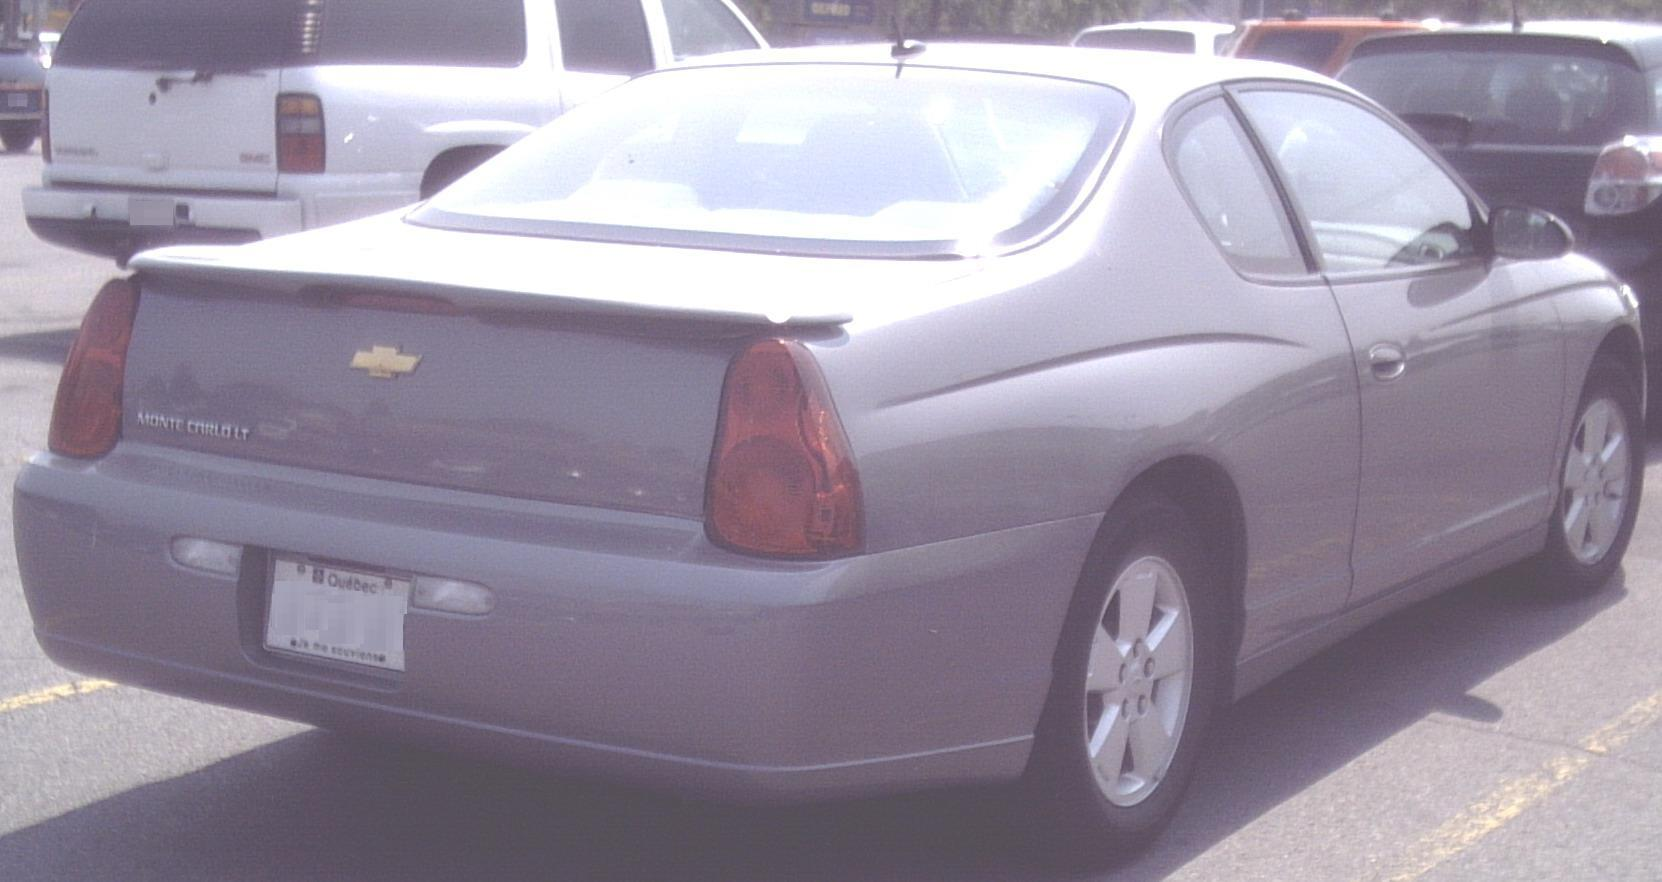 All Chevy chevy 2006 : File:2006 Chevy Monte Carlo.jpg - Wikimedia Commons